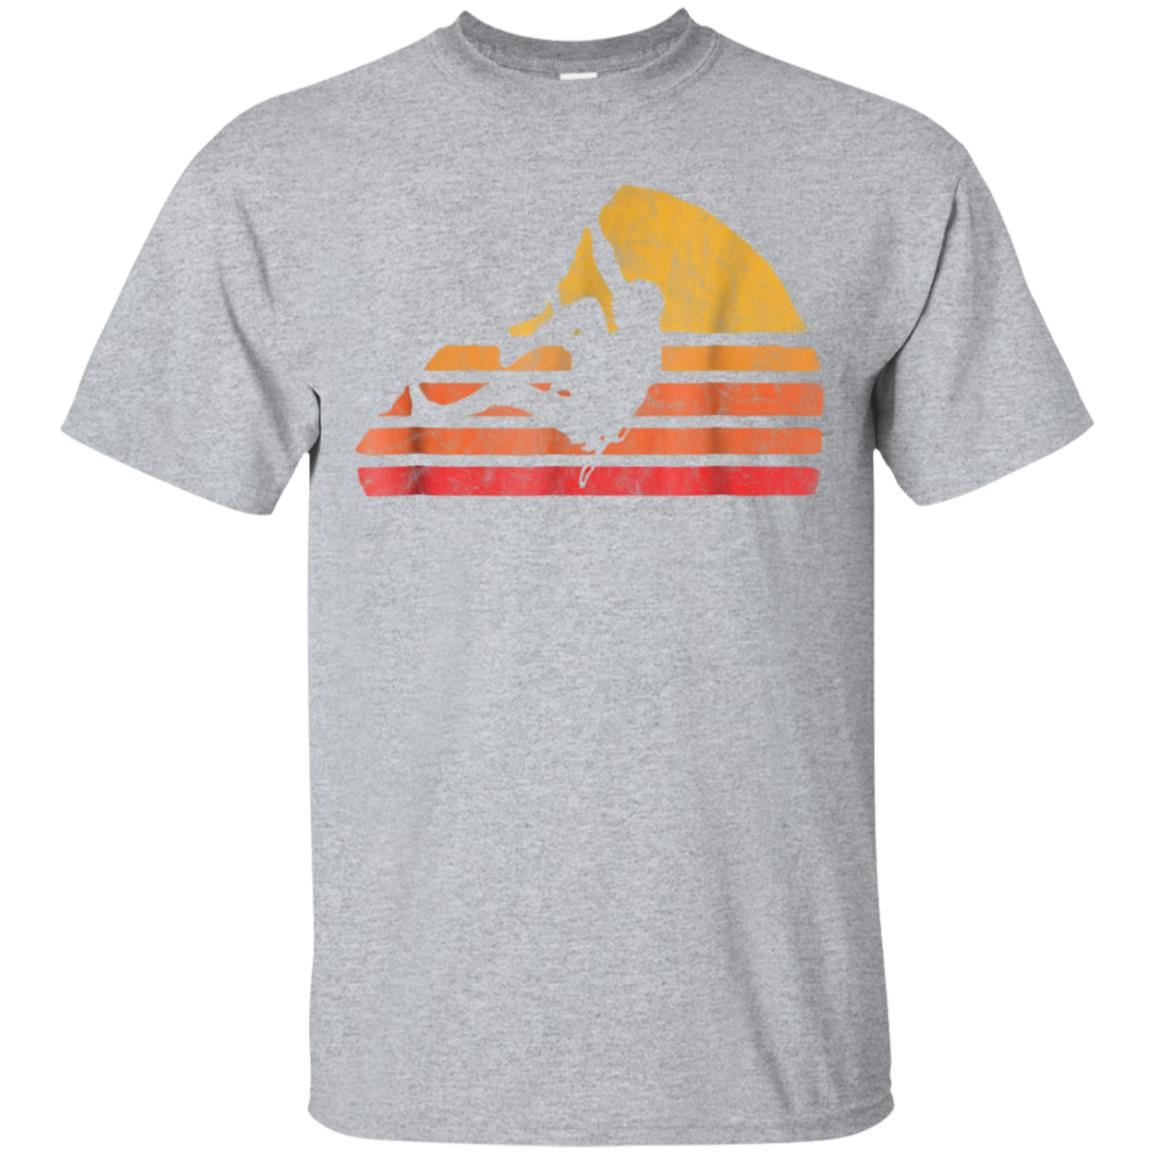 Bouldering - Distressed Retro Rock Climbing T-Shirt 99promocode